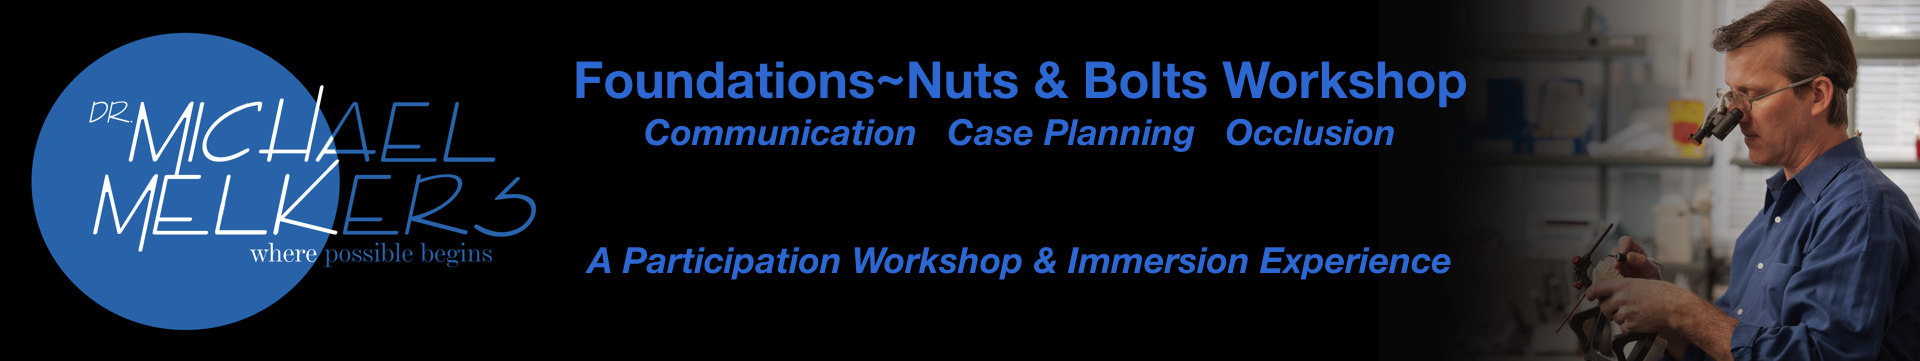 Nuts & Bolts~Foundations Hanover November 2018